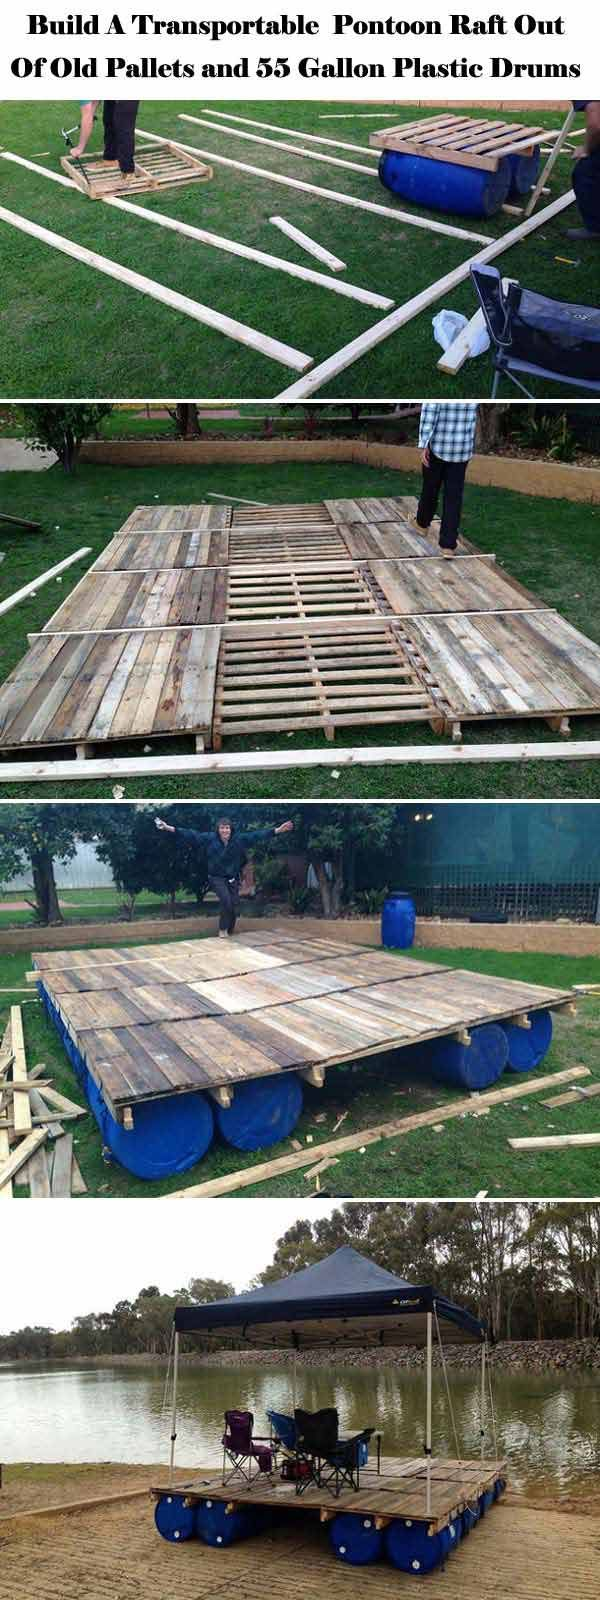 Build a Transportable Pontoon Raft Out of Pallets and 55 Gallon Plastic Drums. | Top 19 Simple and Low-budget Ideas For Building a Floating Deck